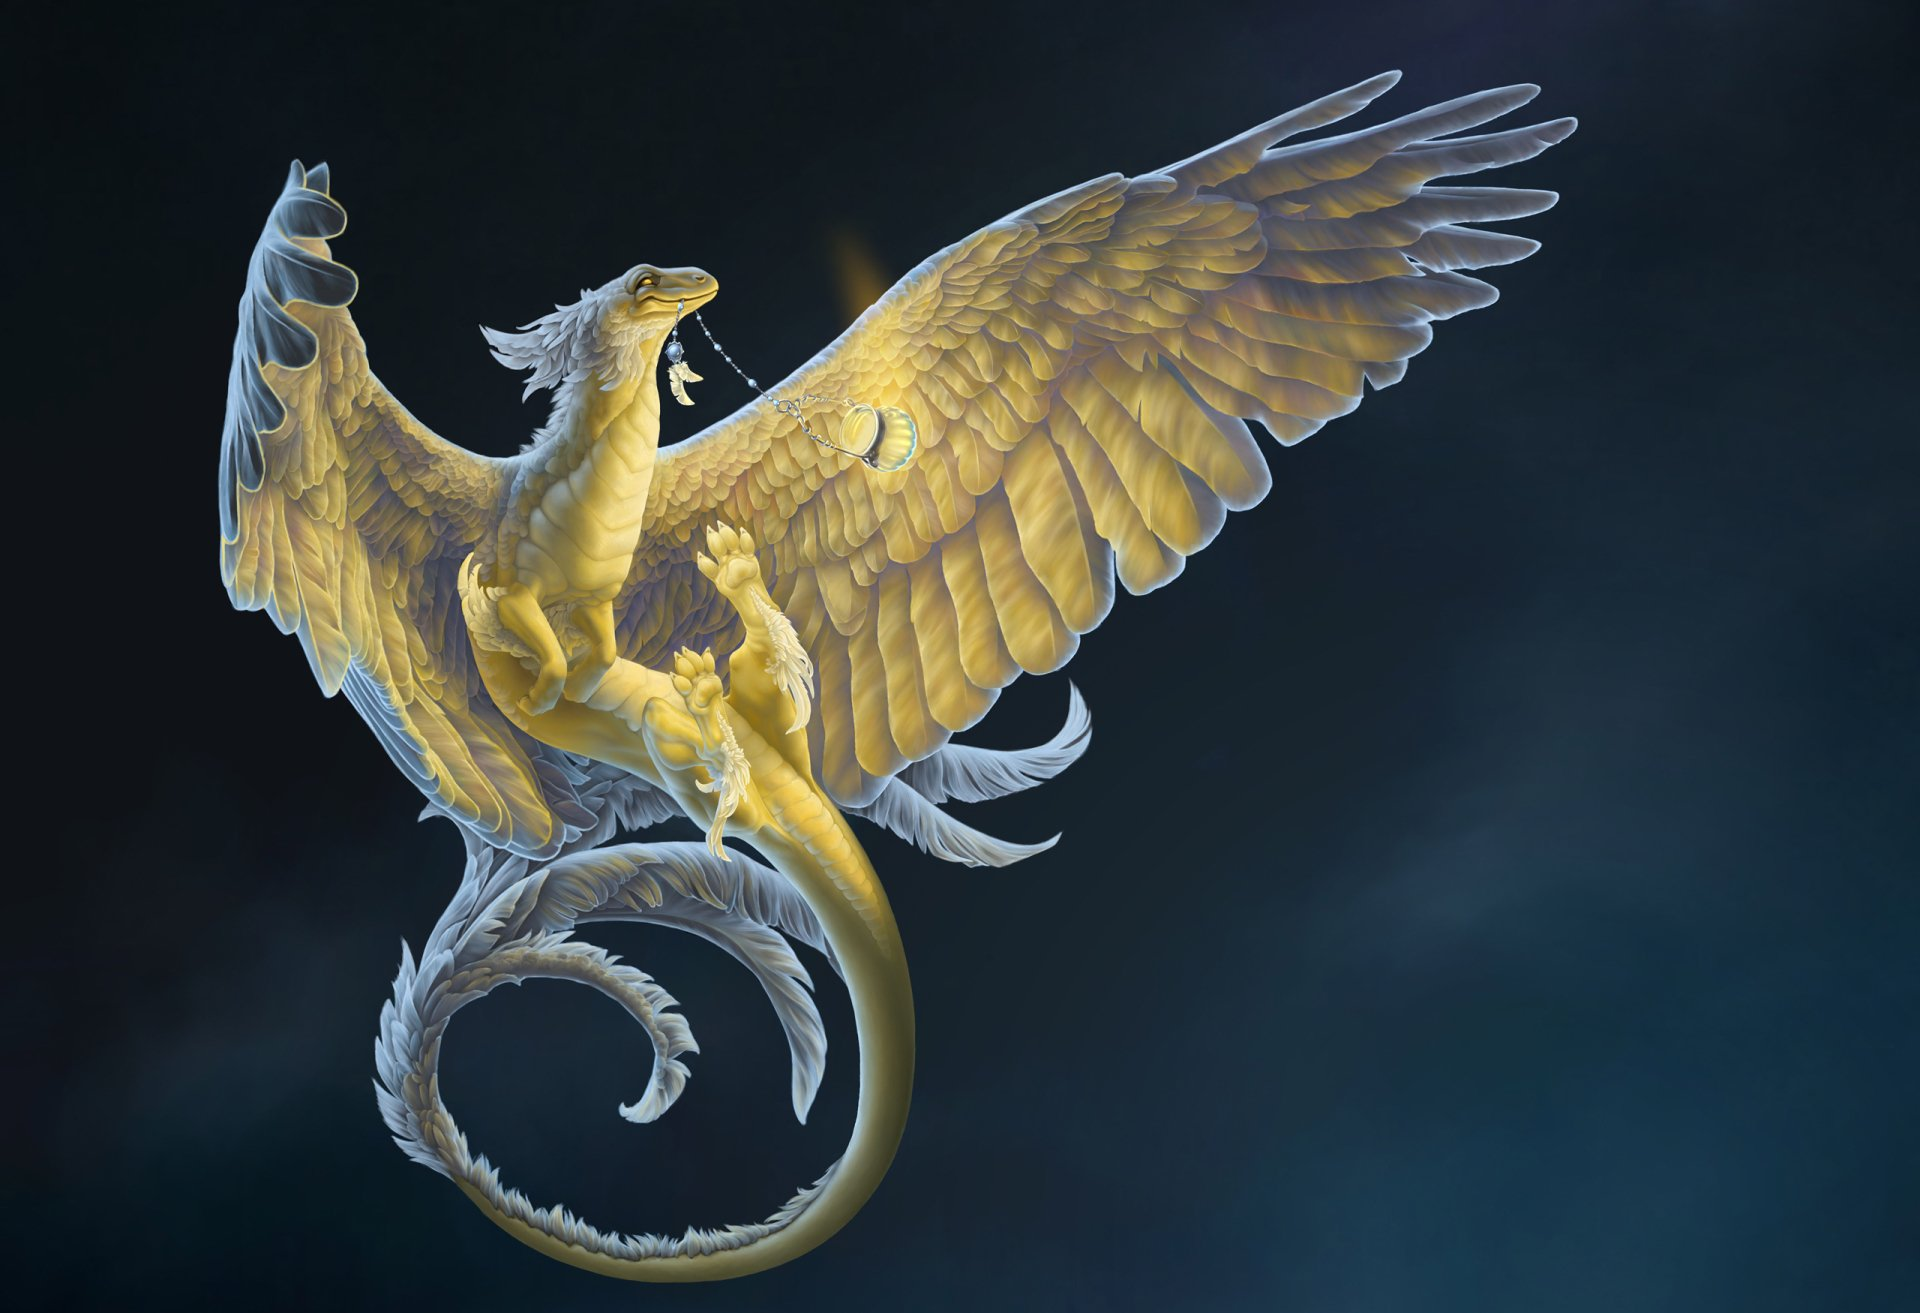 Fantasy - Dragon  Fantasy Creature Wallpaper